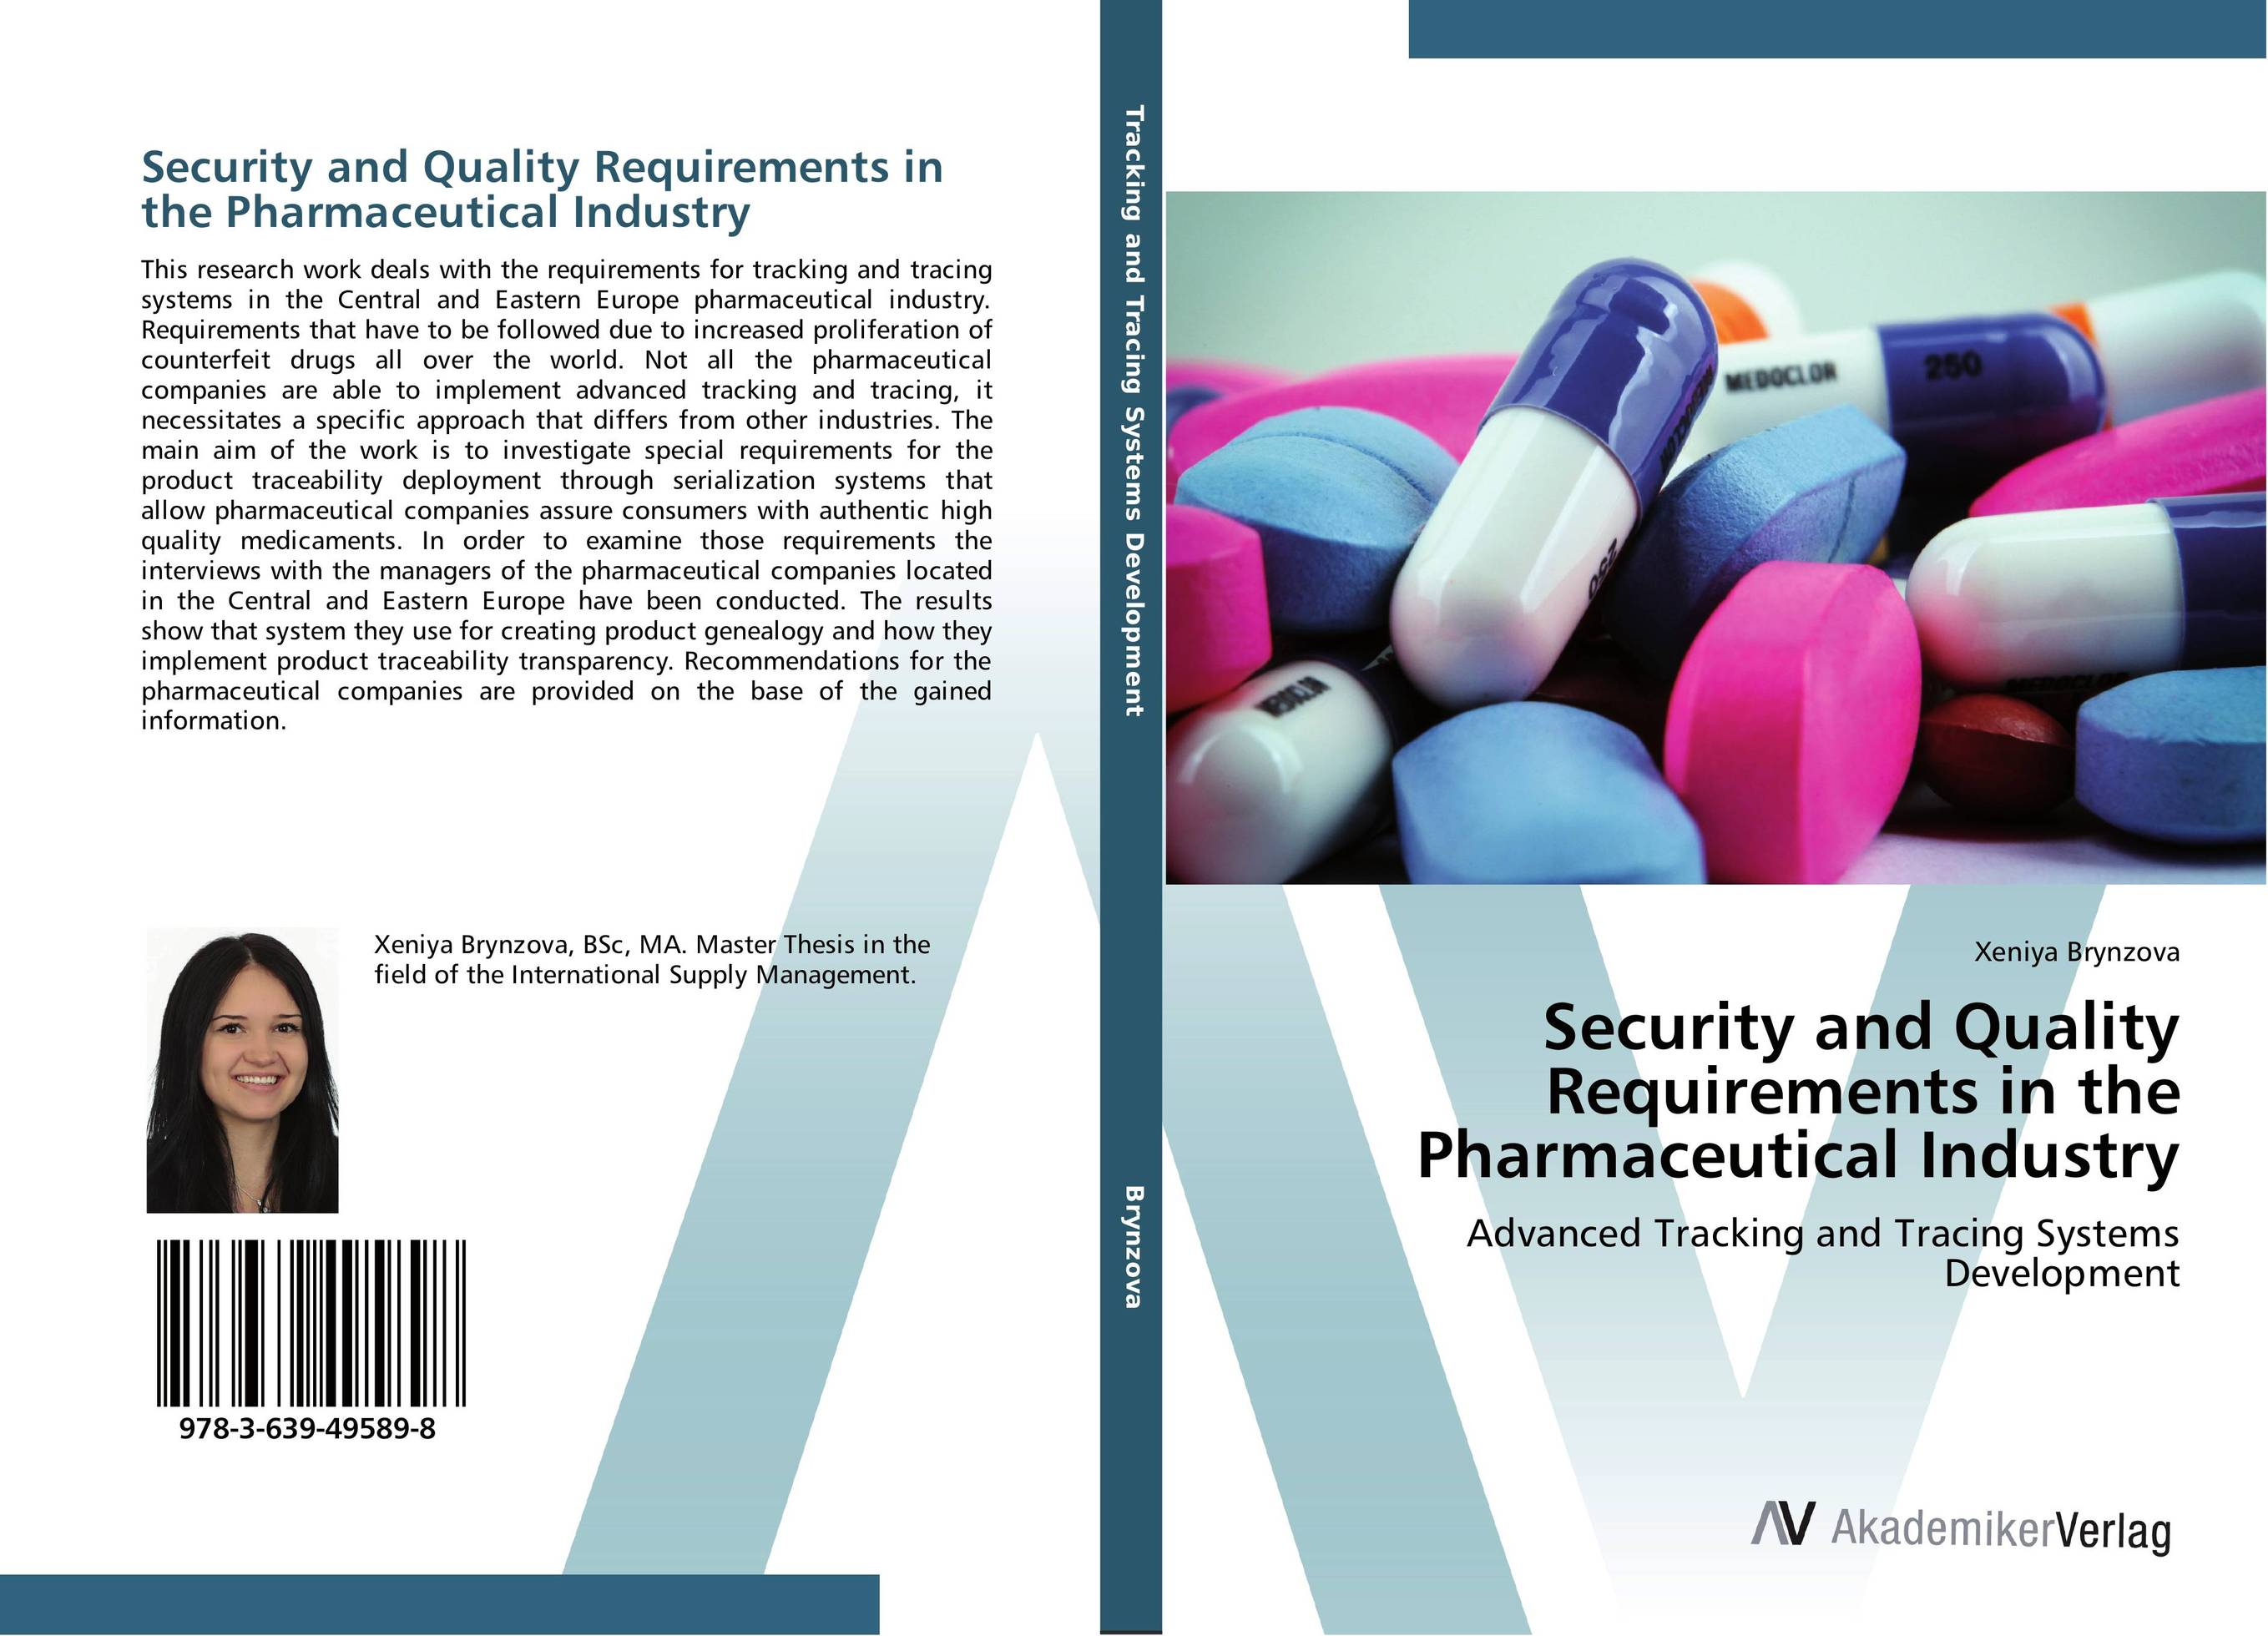 Security and Quality Requirements in the Pharmaceutical Industry